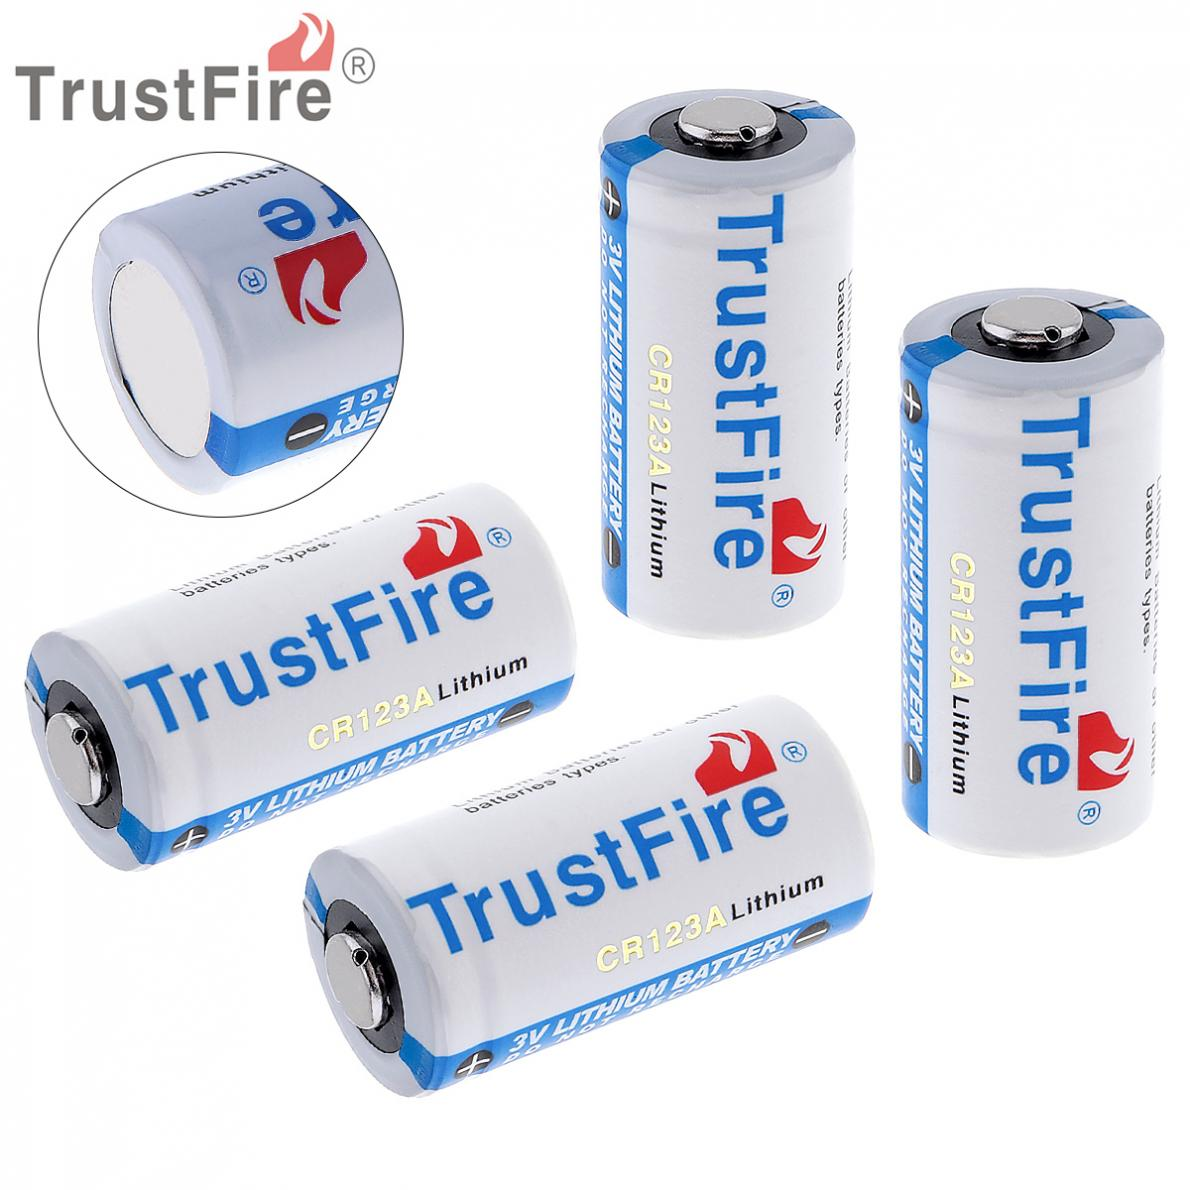 все цены на Trustfire 4 Pieces High Quality CR123A 16340 Lithium Li-ion Batteries Trustfire 3V Battery 1400mAh